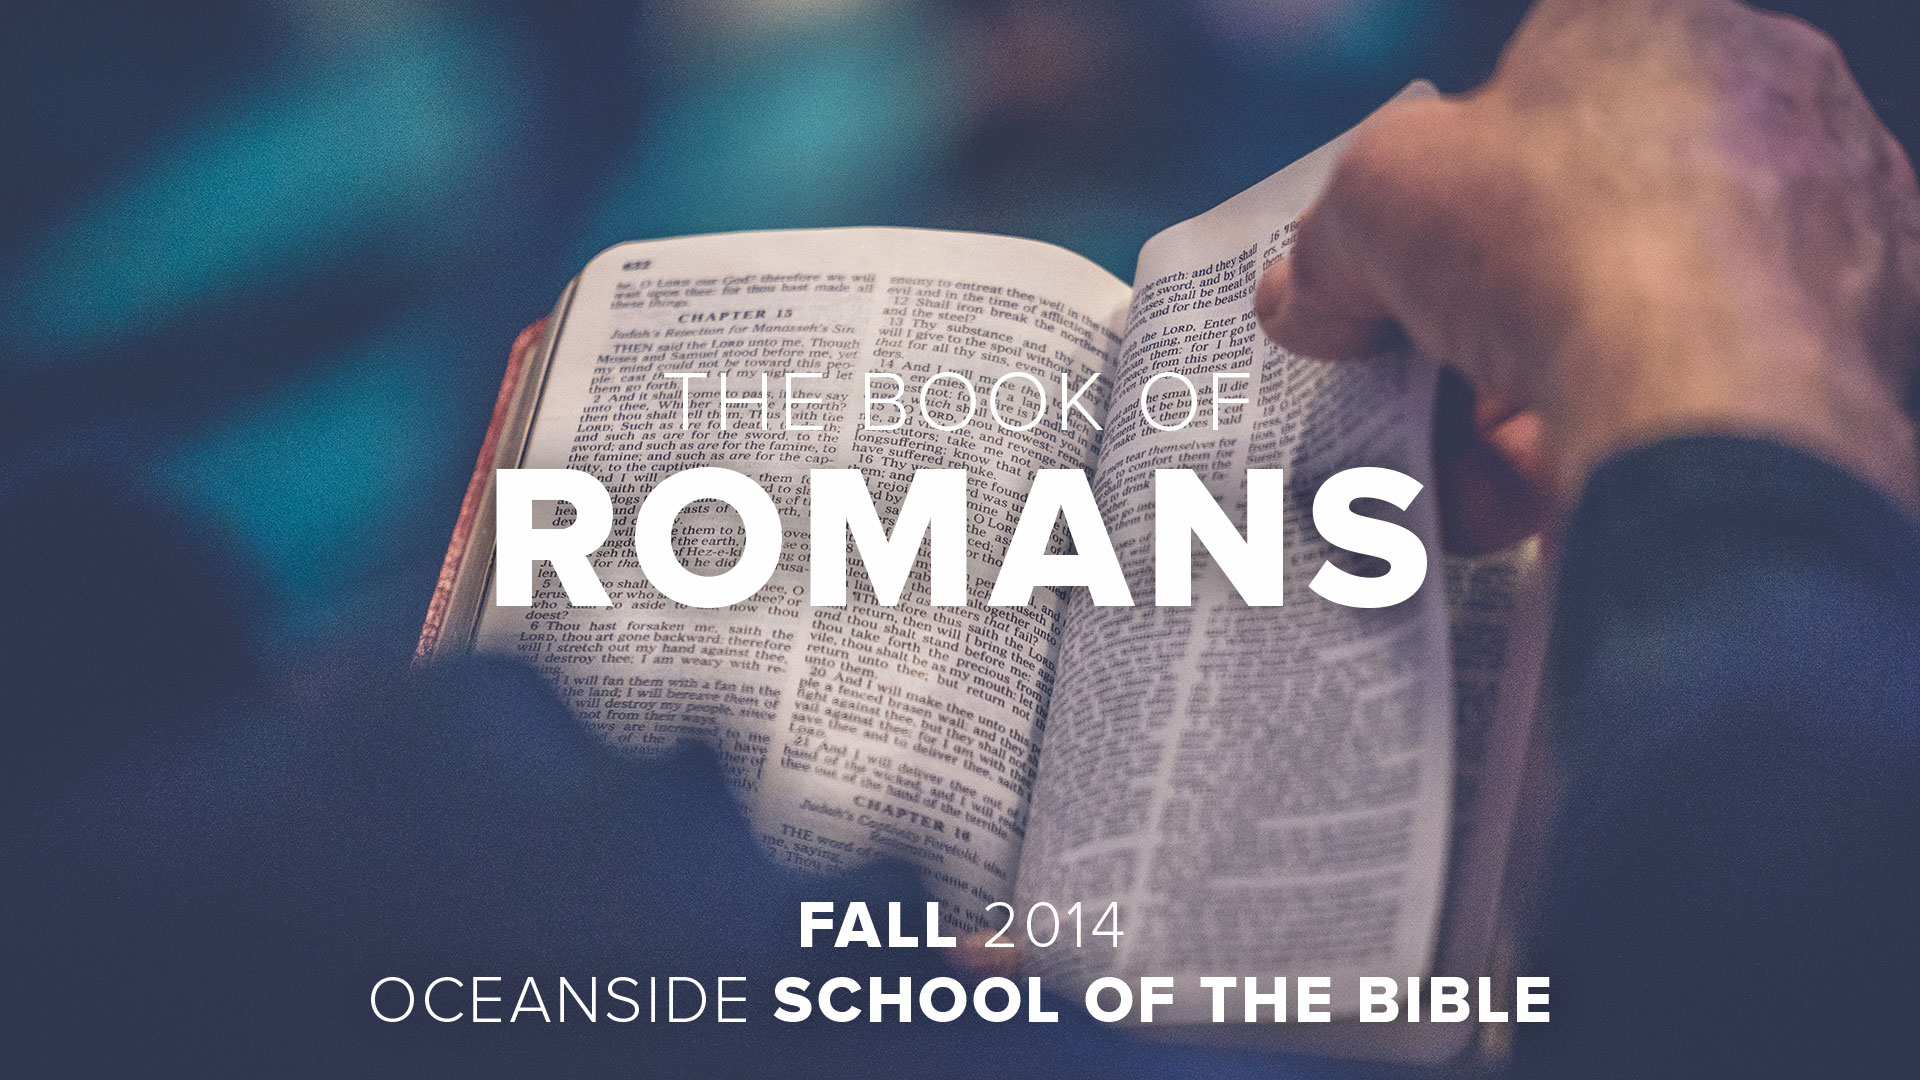 Session 7 - Romans